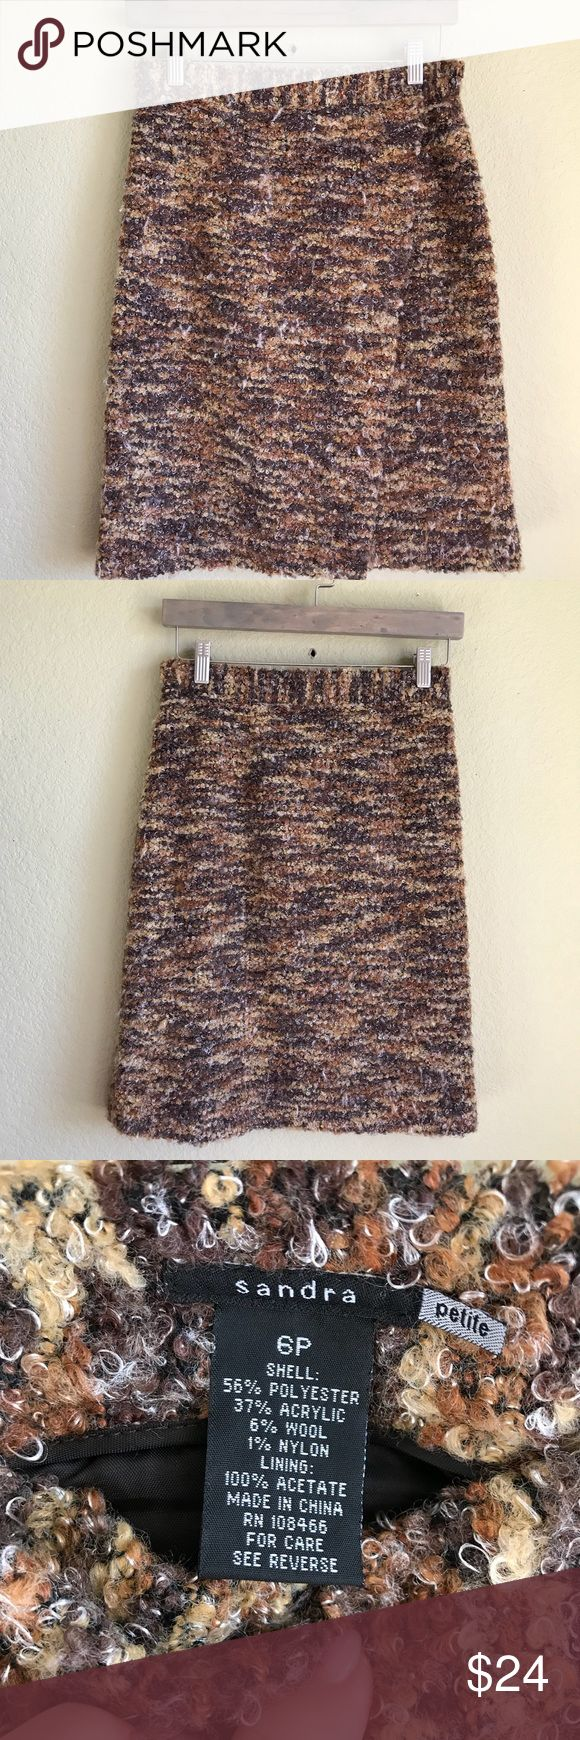 """SANDRA Boucle Faux Wrap Pencil Skirt SANDRA Boucle Faux Wrap Pencil Skirt Size 6P Array of warm brown & tan colors 14.5"""" waist 22"""" length  Thank you for looking and please check out the price my closet. sandra Skirts Pencil"""